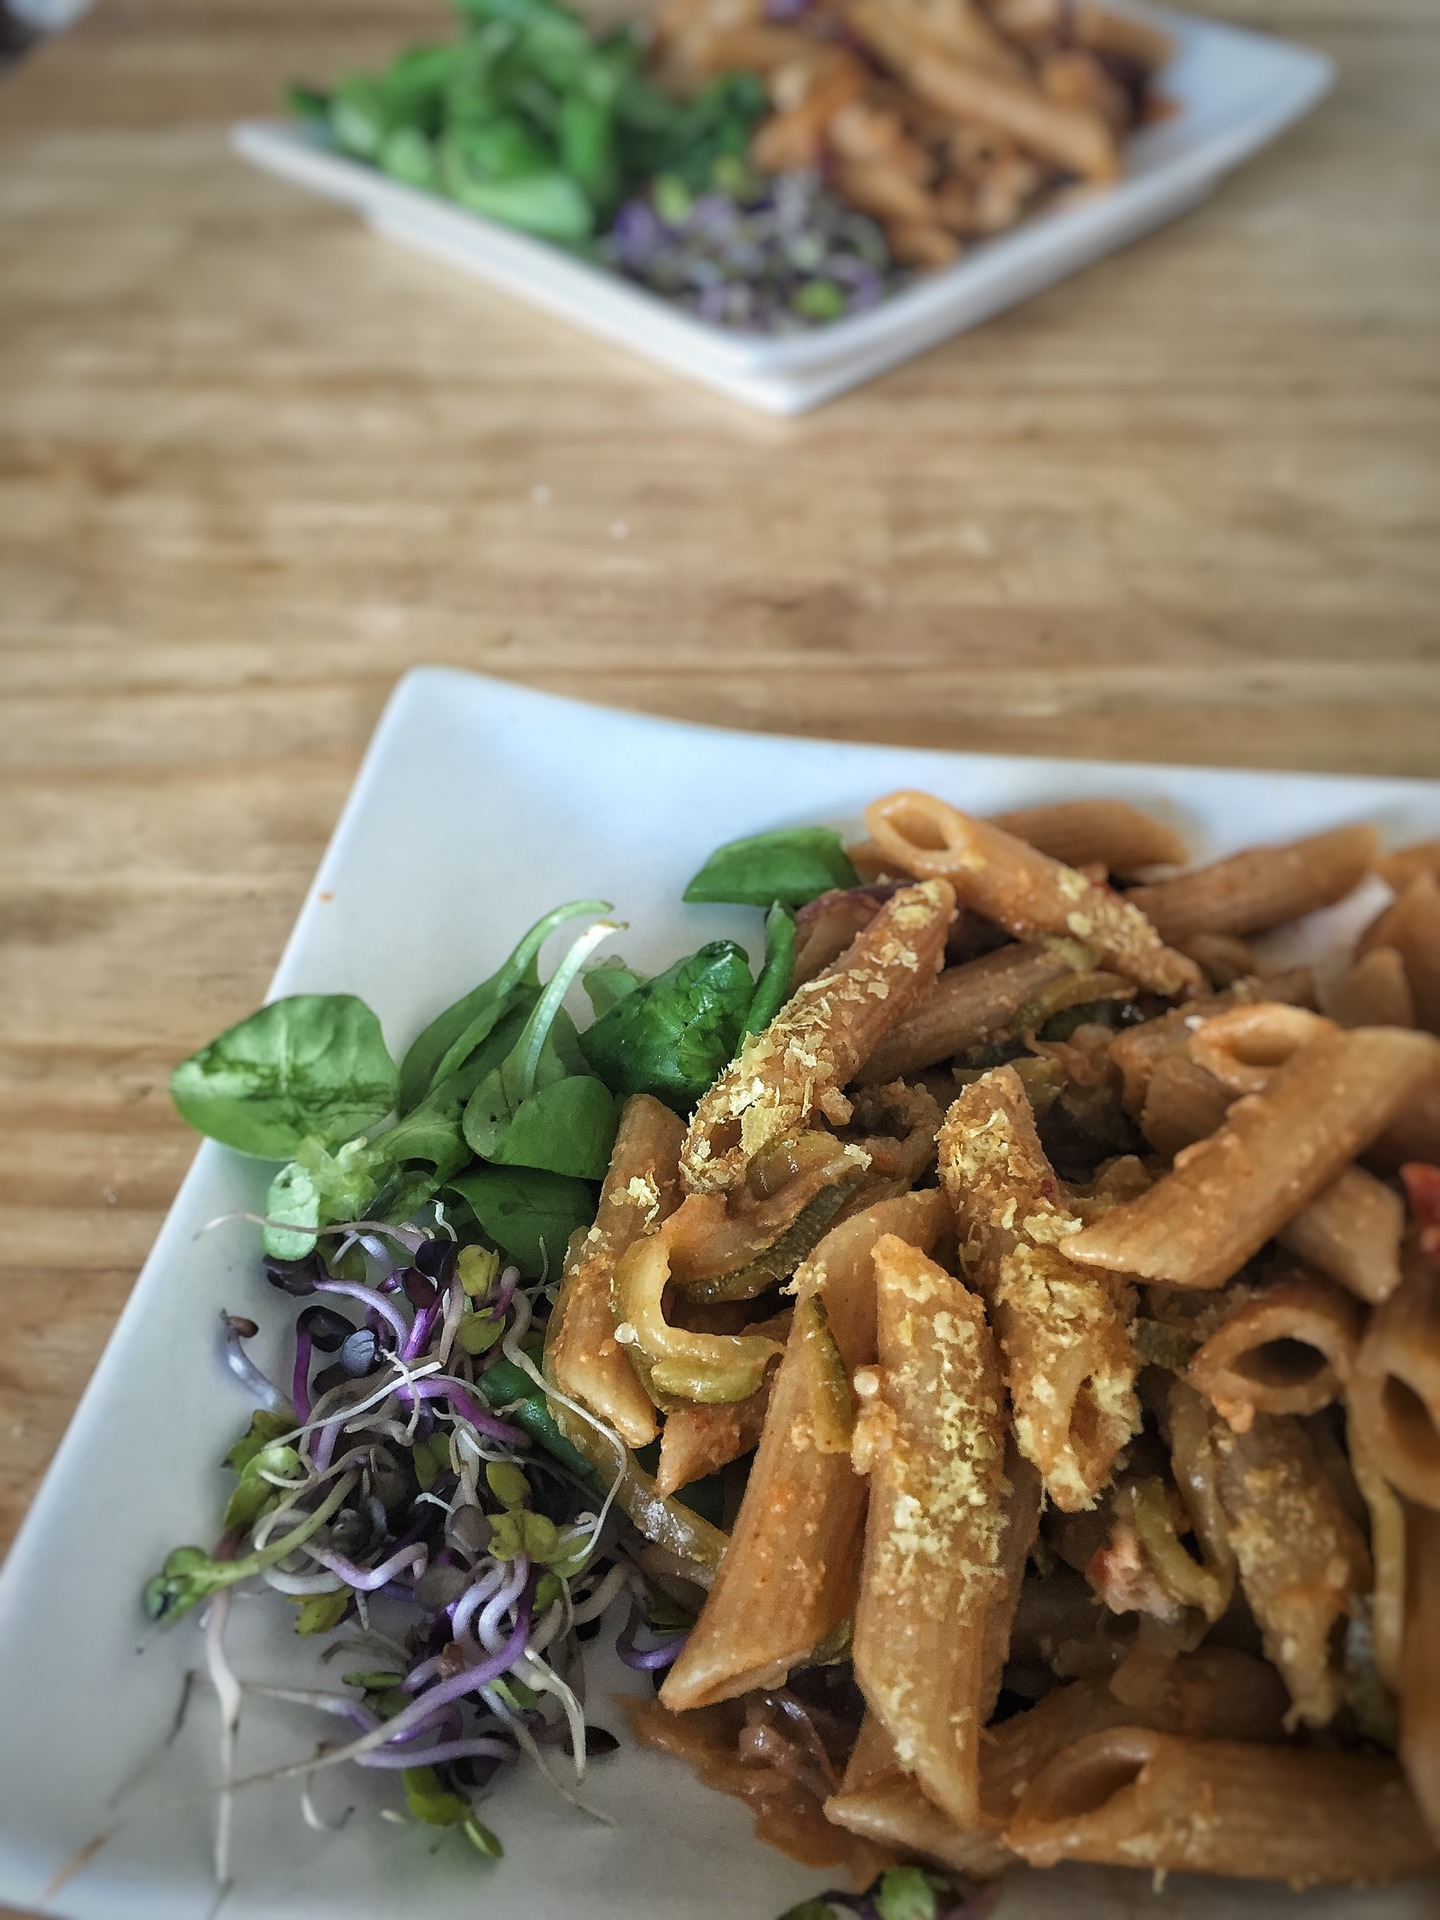 rye-pasta with added nutritional yeast